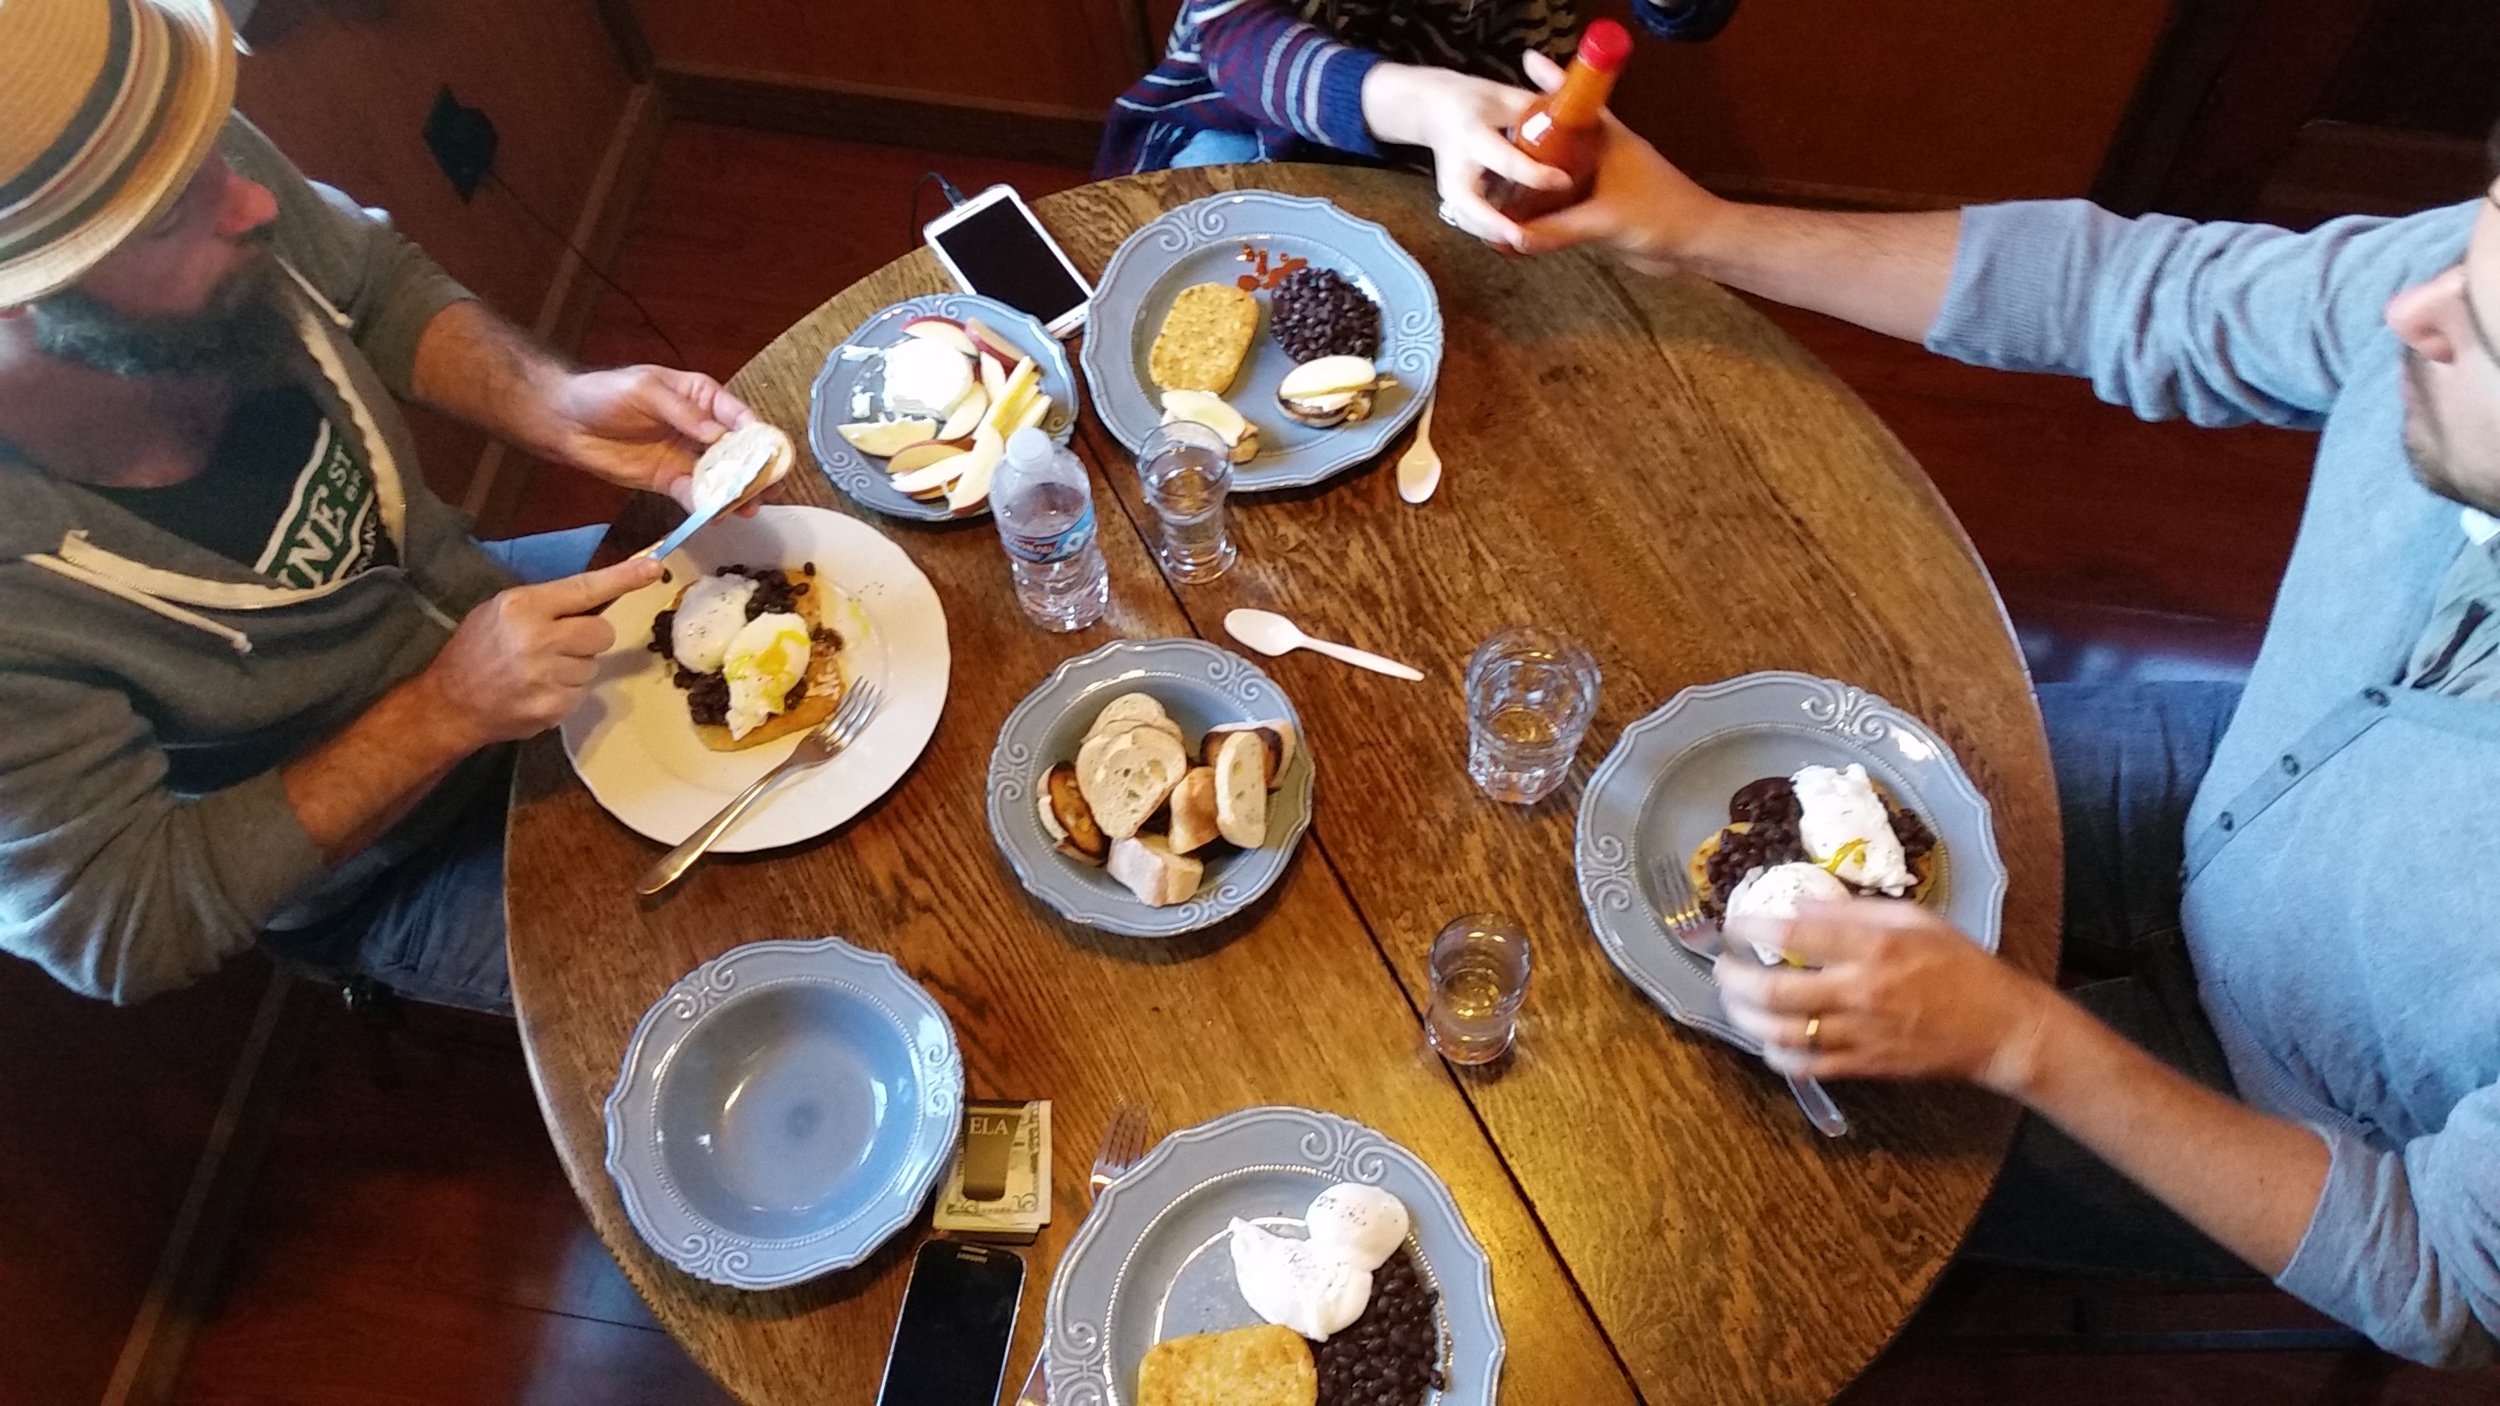 Eating breakfast made of gas station ingredients around the kitchen table at our adorable little cottage at the Jenner Inn. Poached eggs, black beans with sea weed, hashbrown patties,baguette and goat cheese toast.